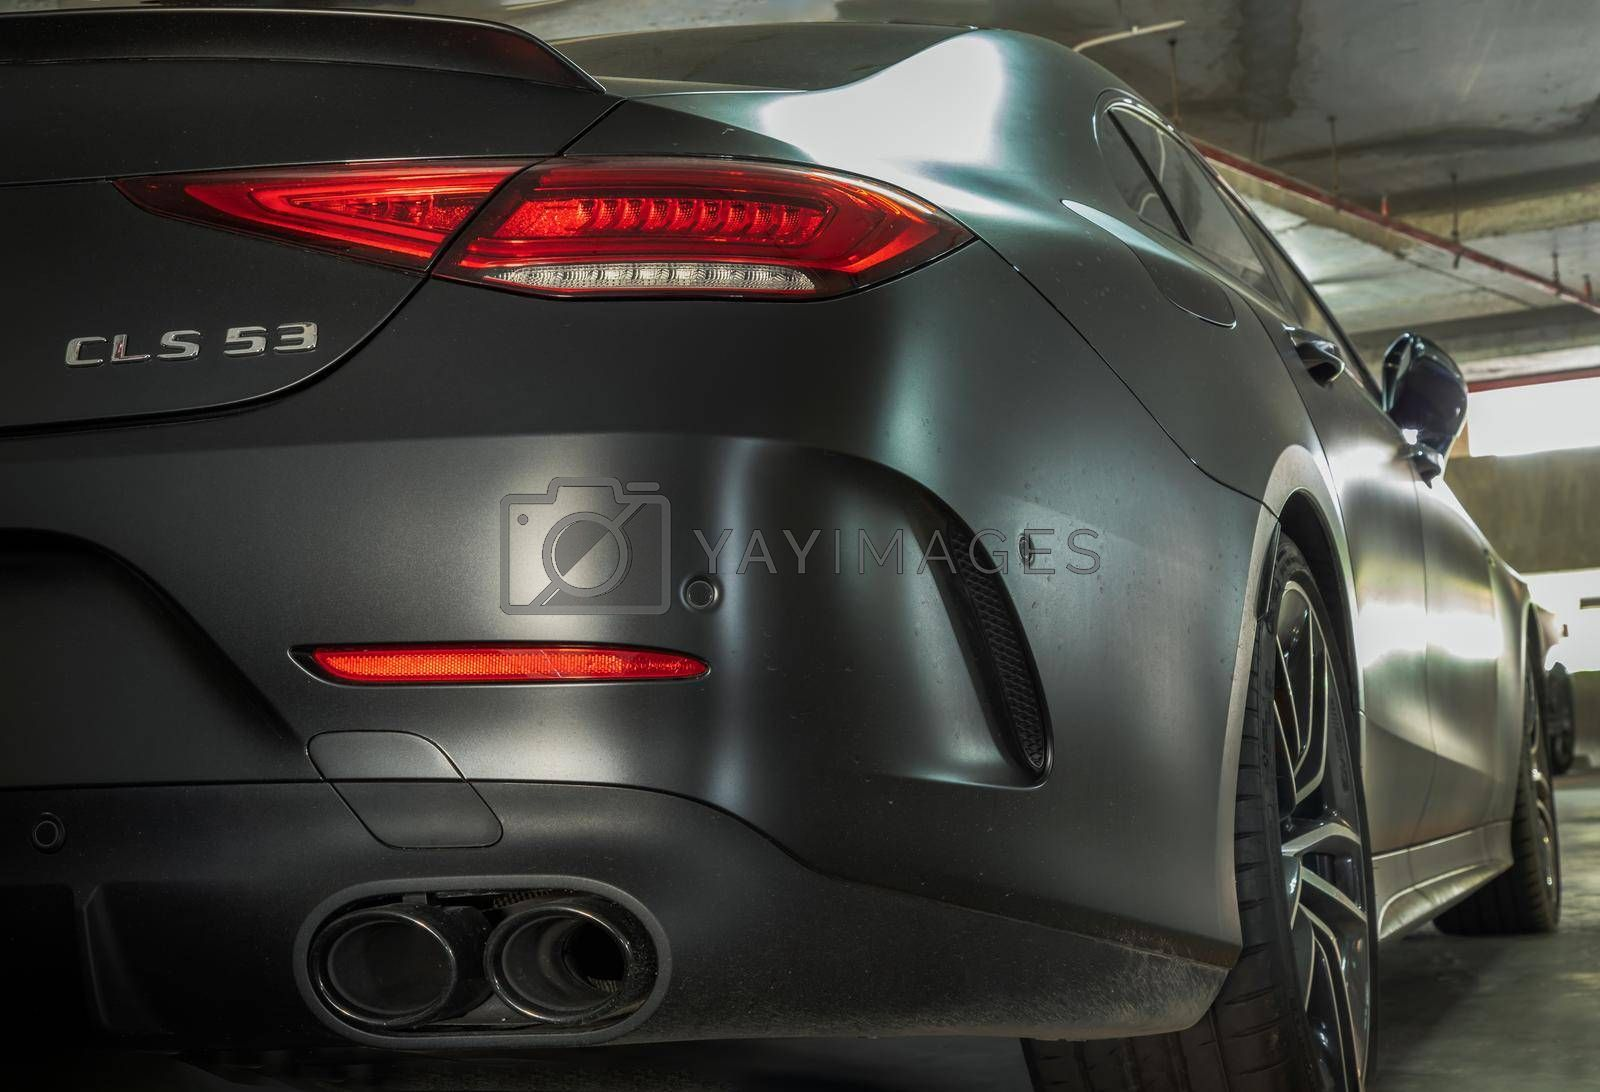 Bangkok, Thailand - 08 Jun 2021 : Close-up of Rear light or Tail lamp, exhaust pipe and Wheel of Matte black mercedes sports car parked in the parking lot. Selective focus.